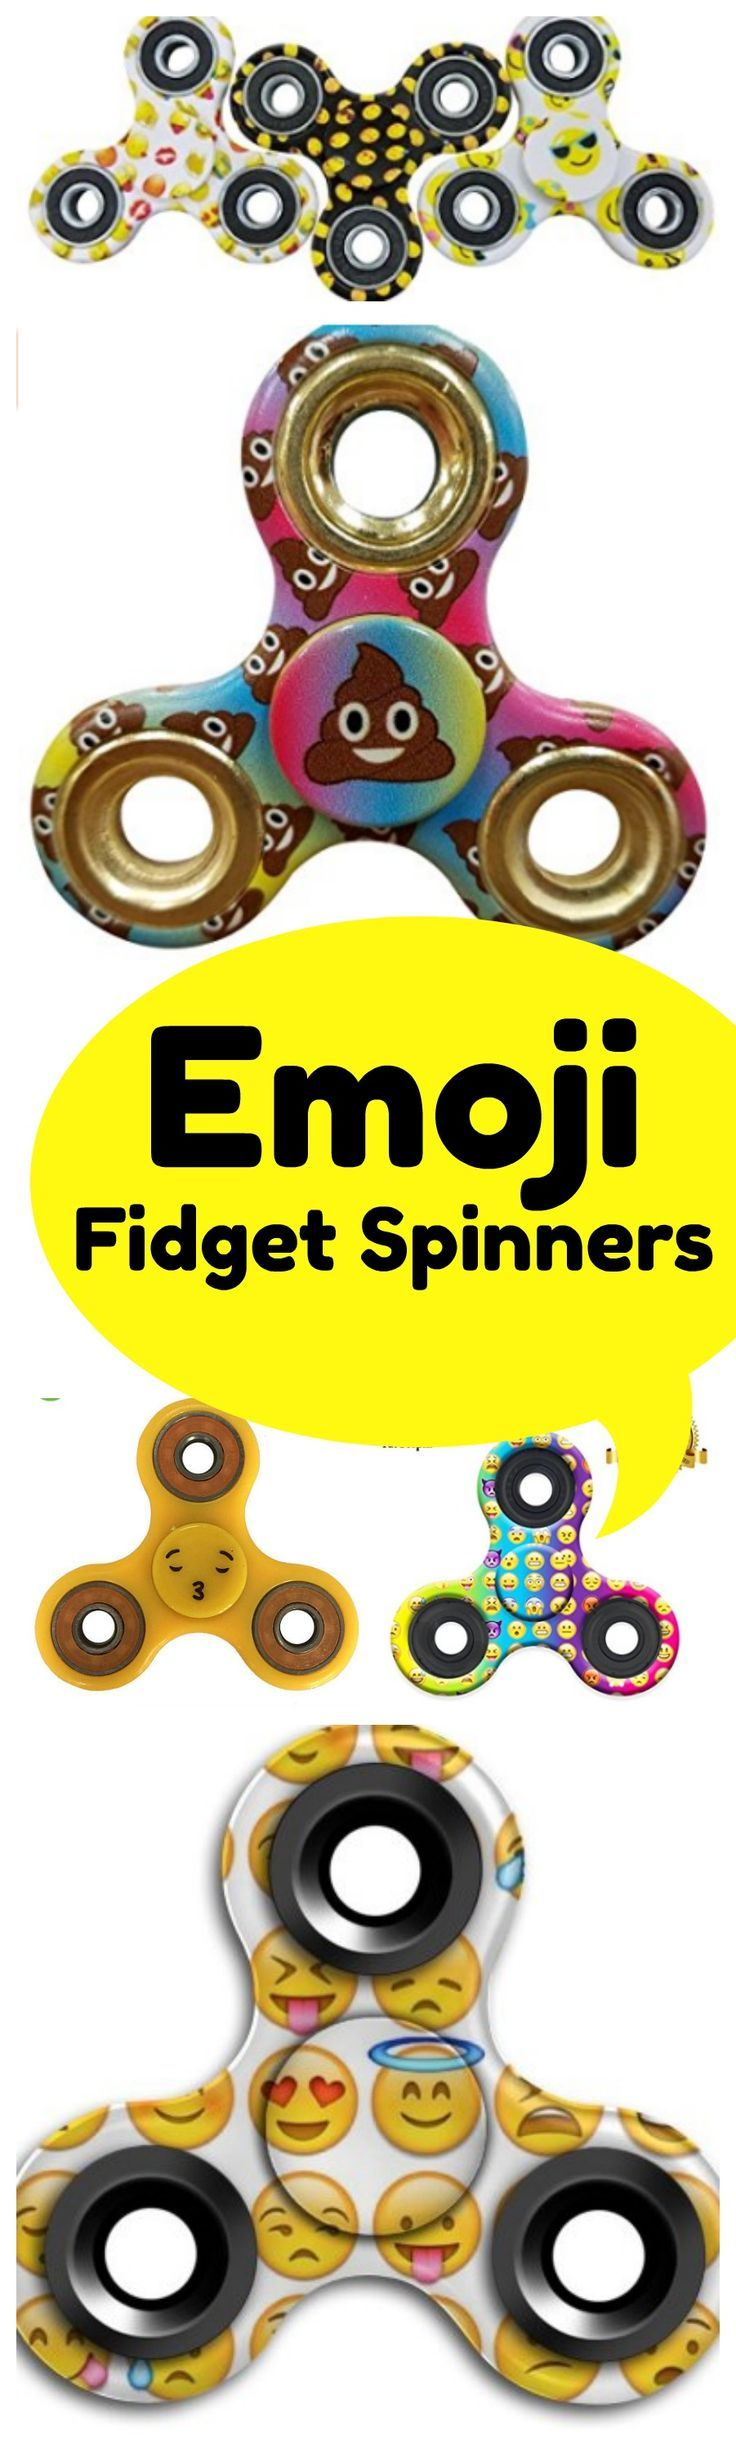 Emoji Fidget Spinners - combine the crazy of fidget spinners with the new Emoji Movie! From poop emojis to smiling emojis and even kissing emojis - there are fidget spinners for everyone!